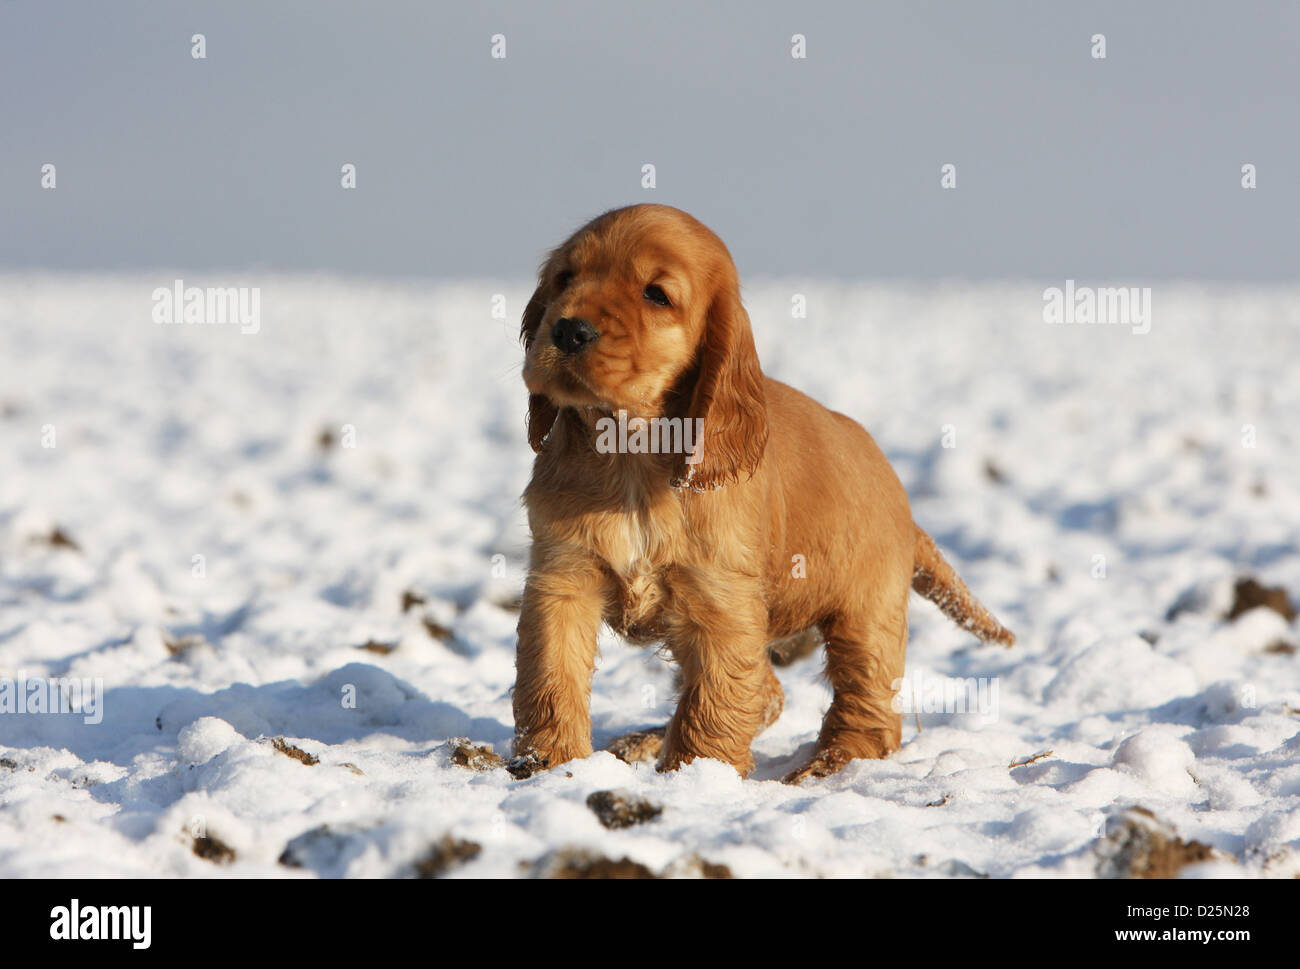 Dog English Cocker Spaniel Puppy Red Standing In Snow Stock Photo Alamy